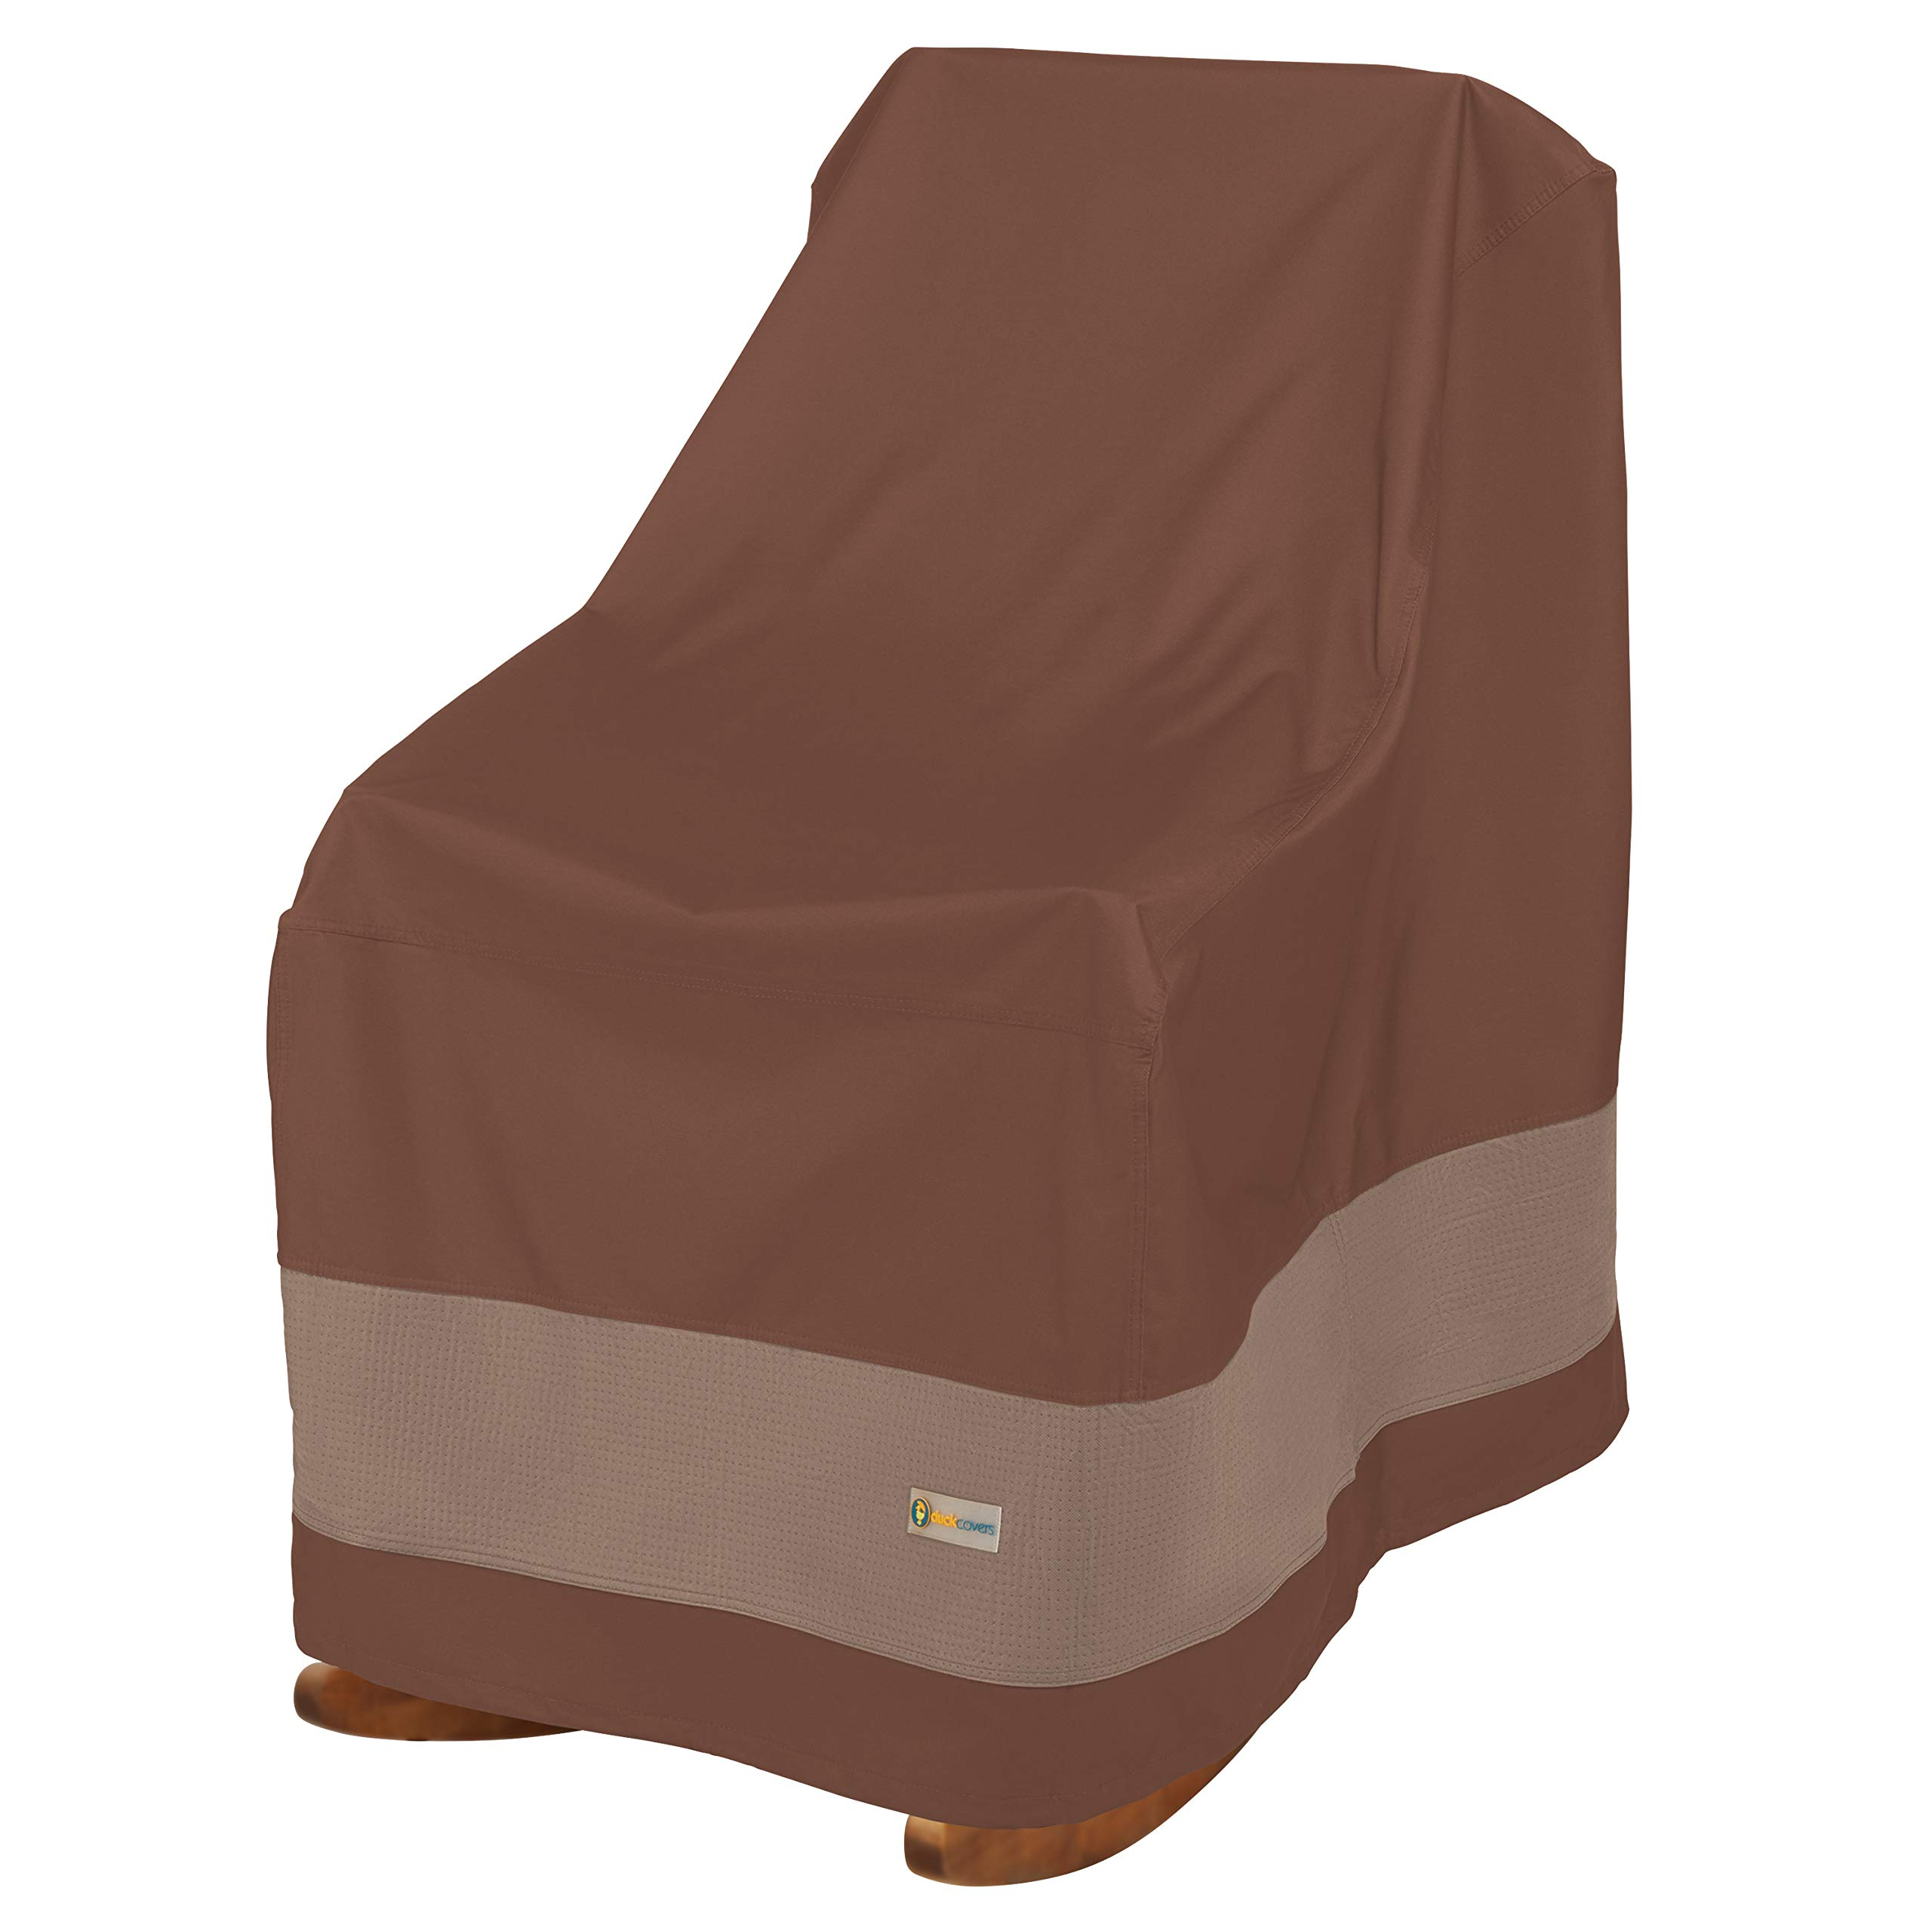 Duck Covers Ultimate Rocking Chair Cover 28'' Wide